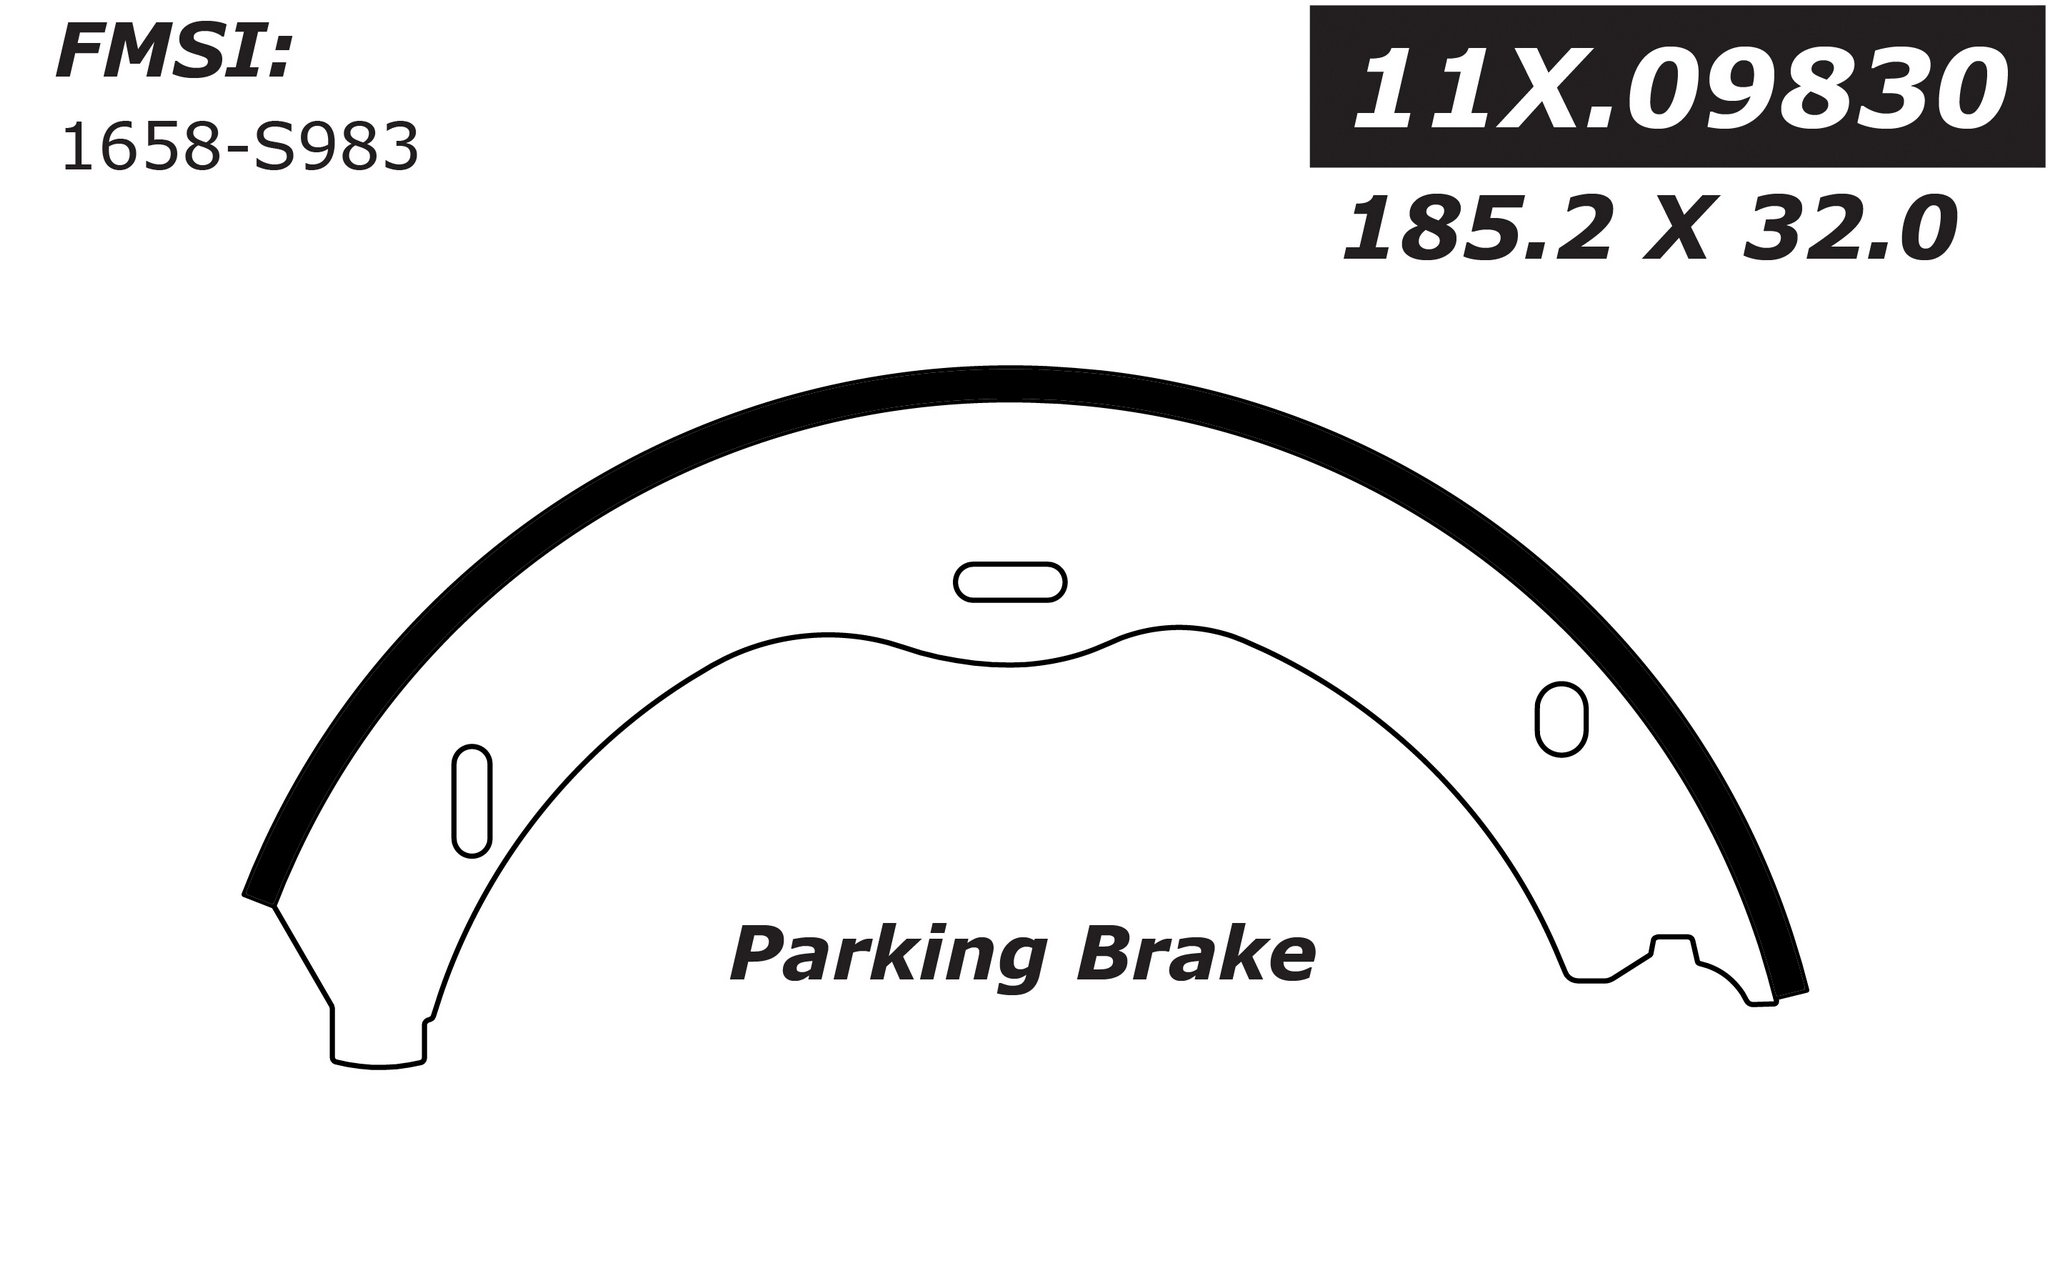 2009 mercedes benz how to change parking brake shoes